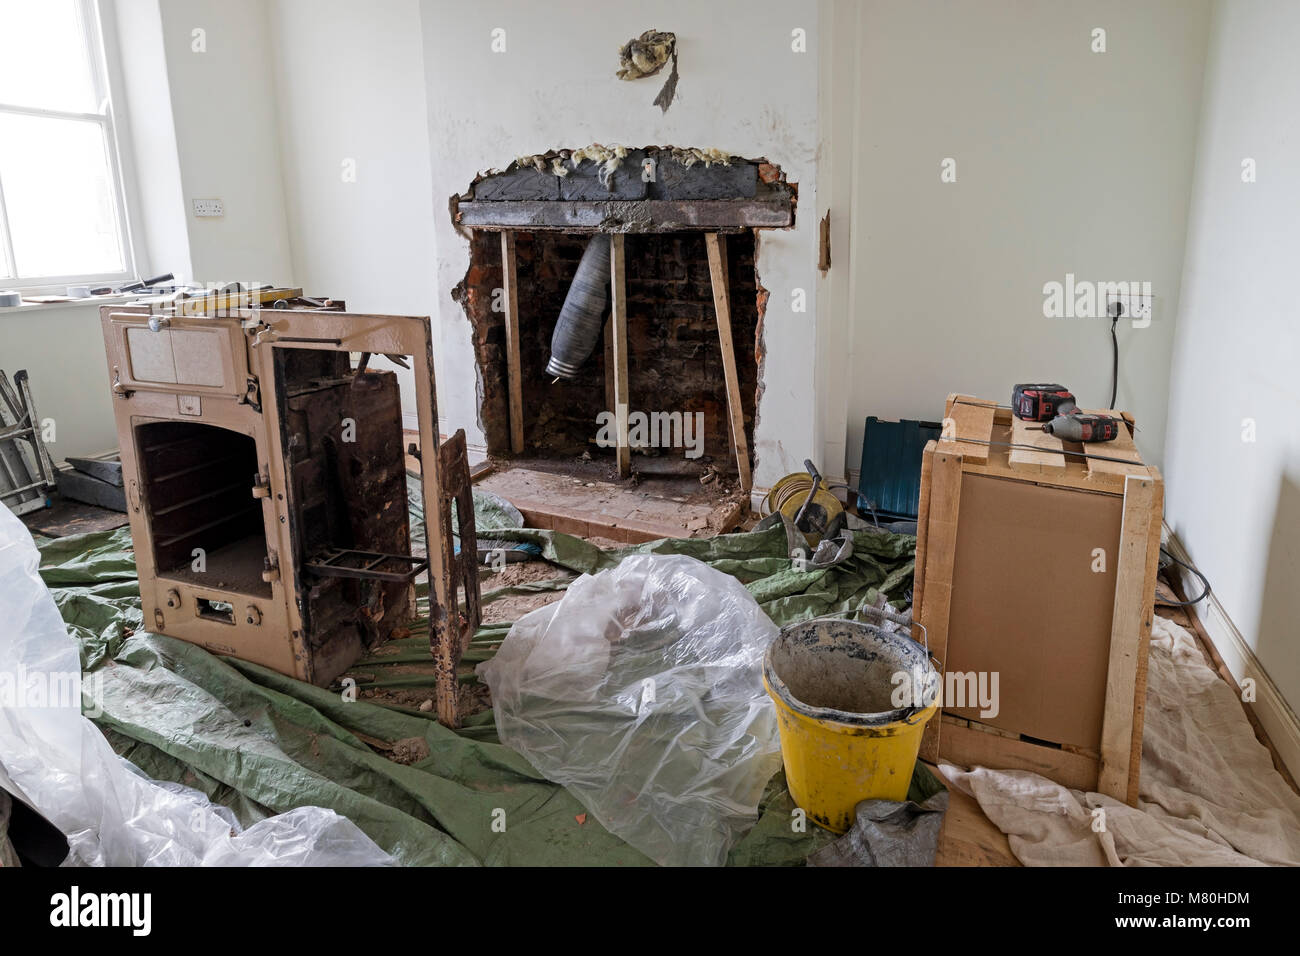 Building Renovation Work Area with Tools and Equipment Laying Around, UK - Stock Image